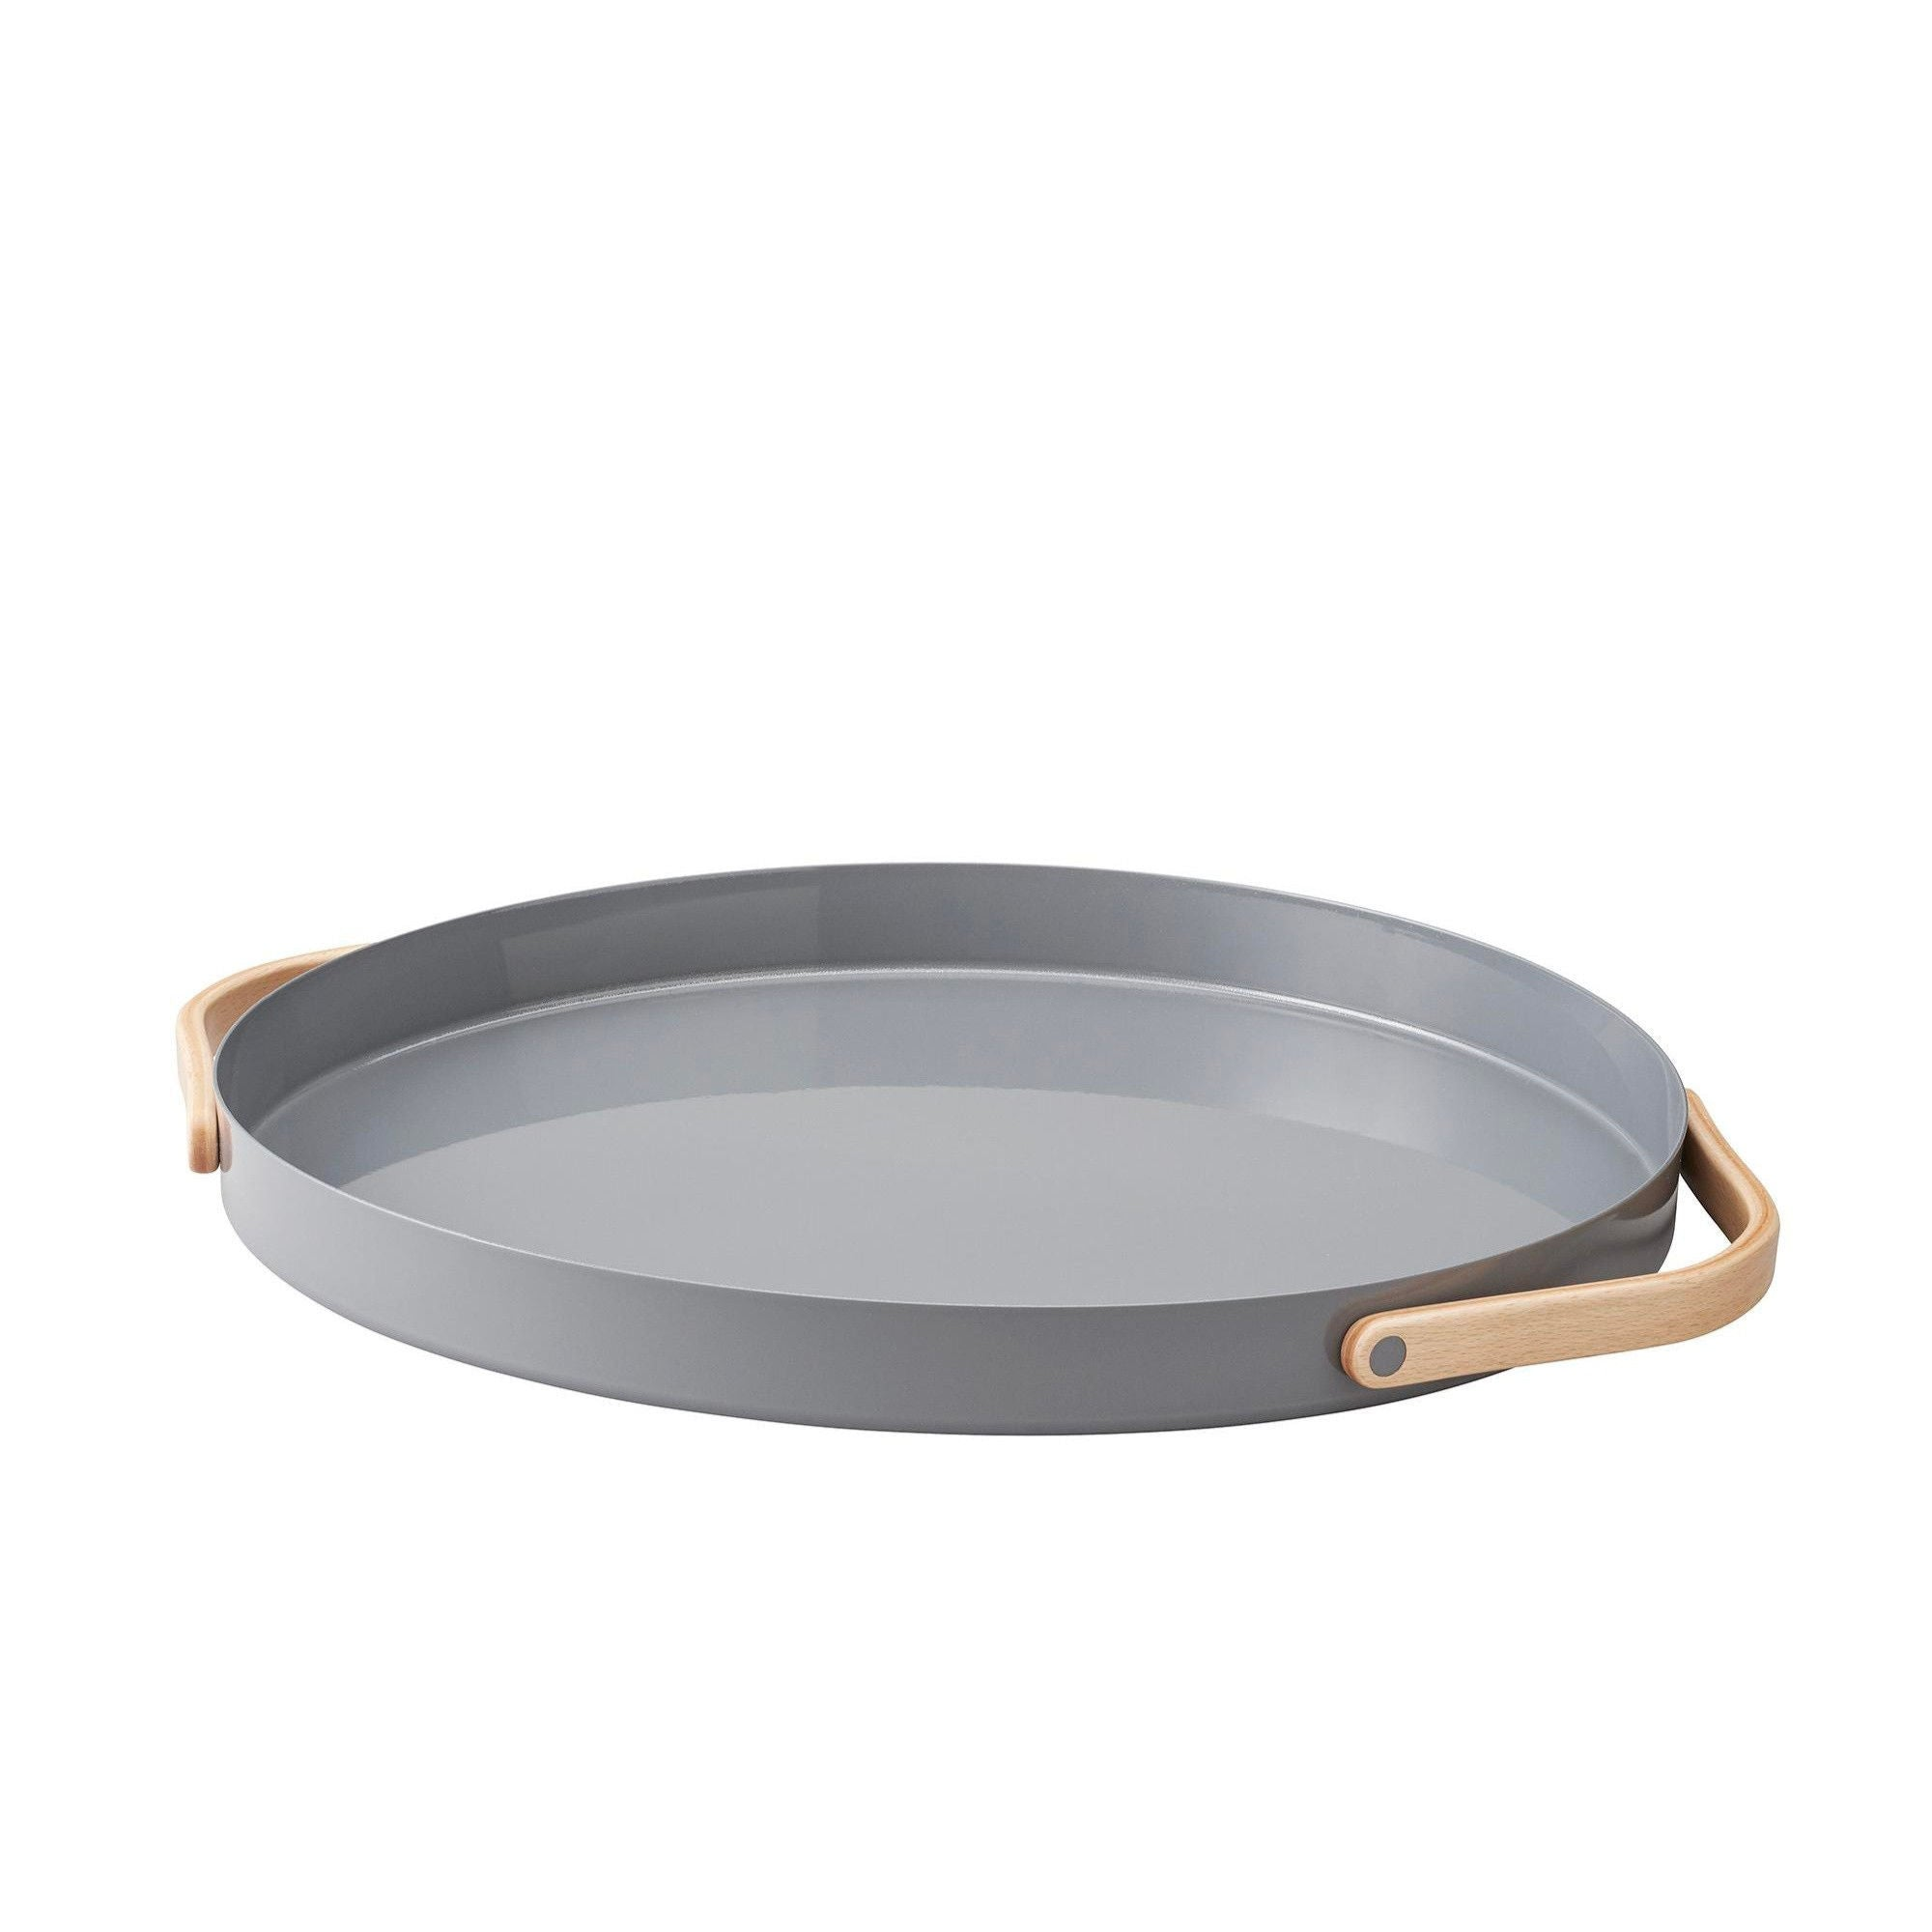 Stelton Emma Serving Tray Round , Grey